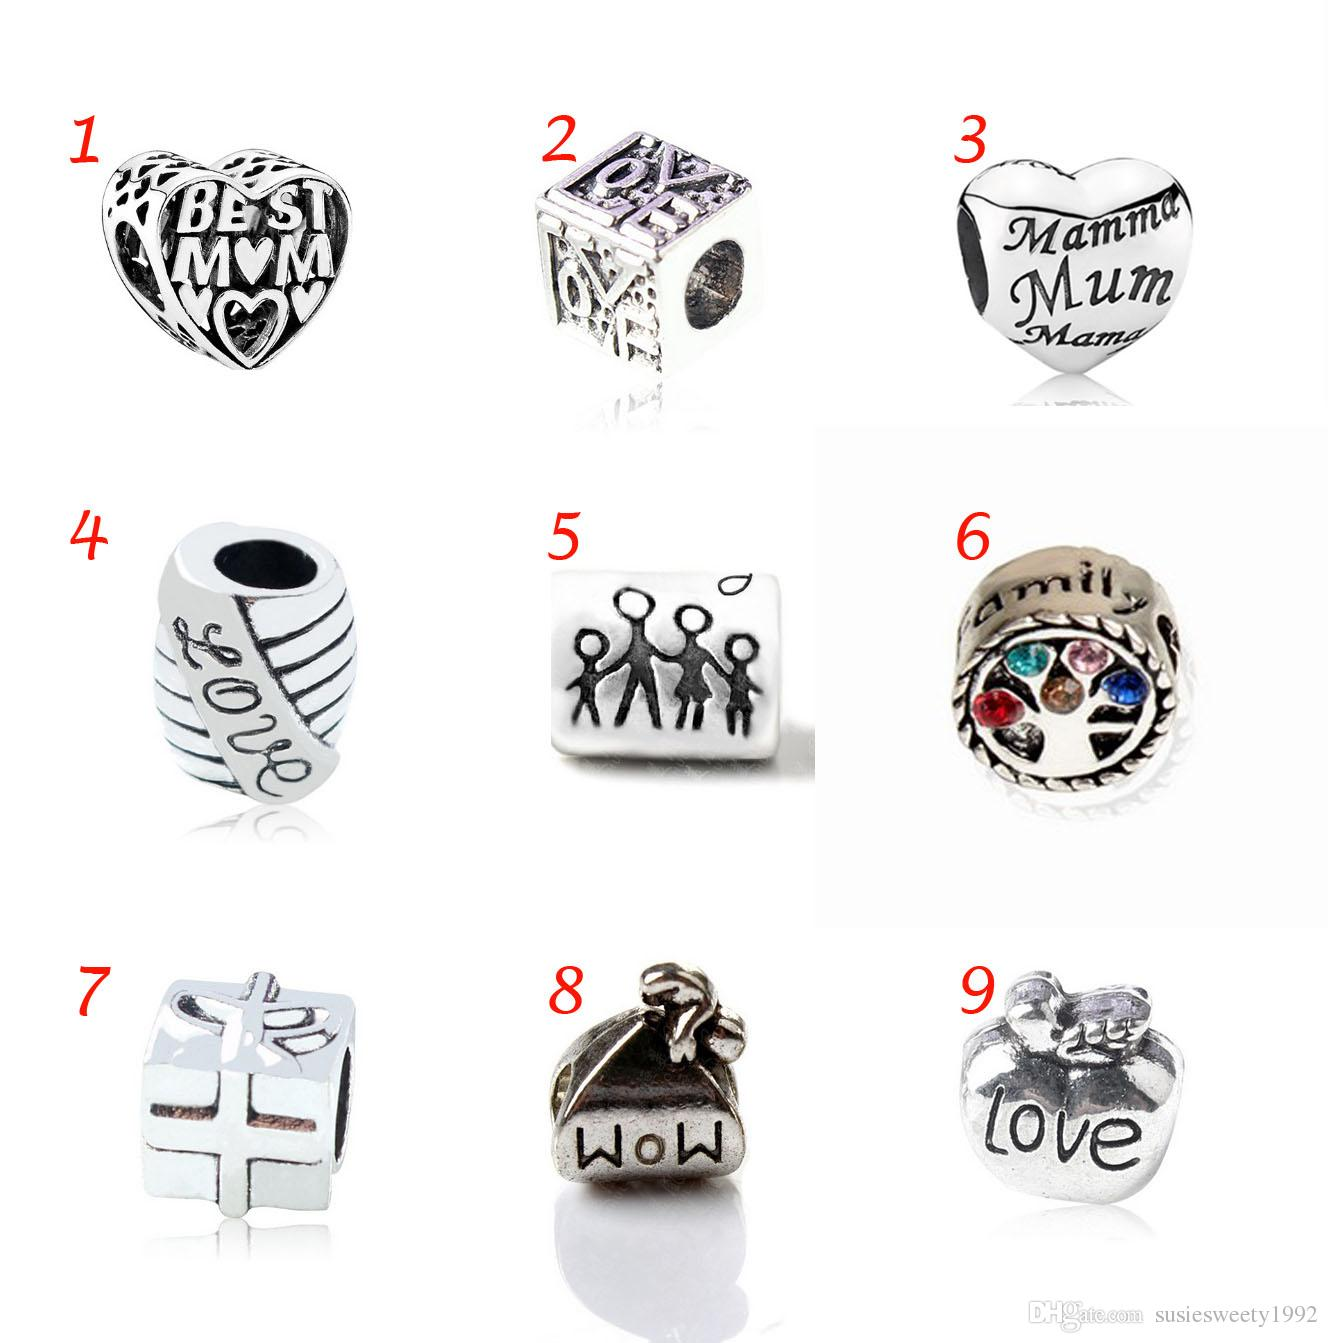 f474a39c1 2019 Red Blue Pink Crystal Silver Apple Family Tree Gift European Charms  Beads For Love Best Mom Baby Mama Charm Bracelets Fit Pandora Bracelet From  ...